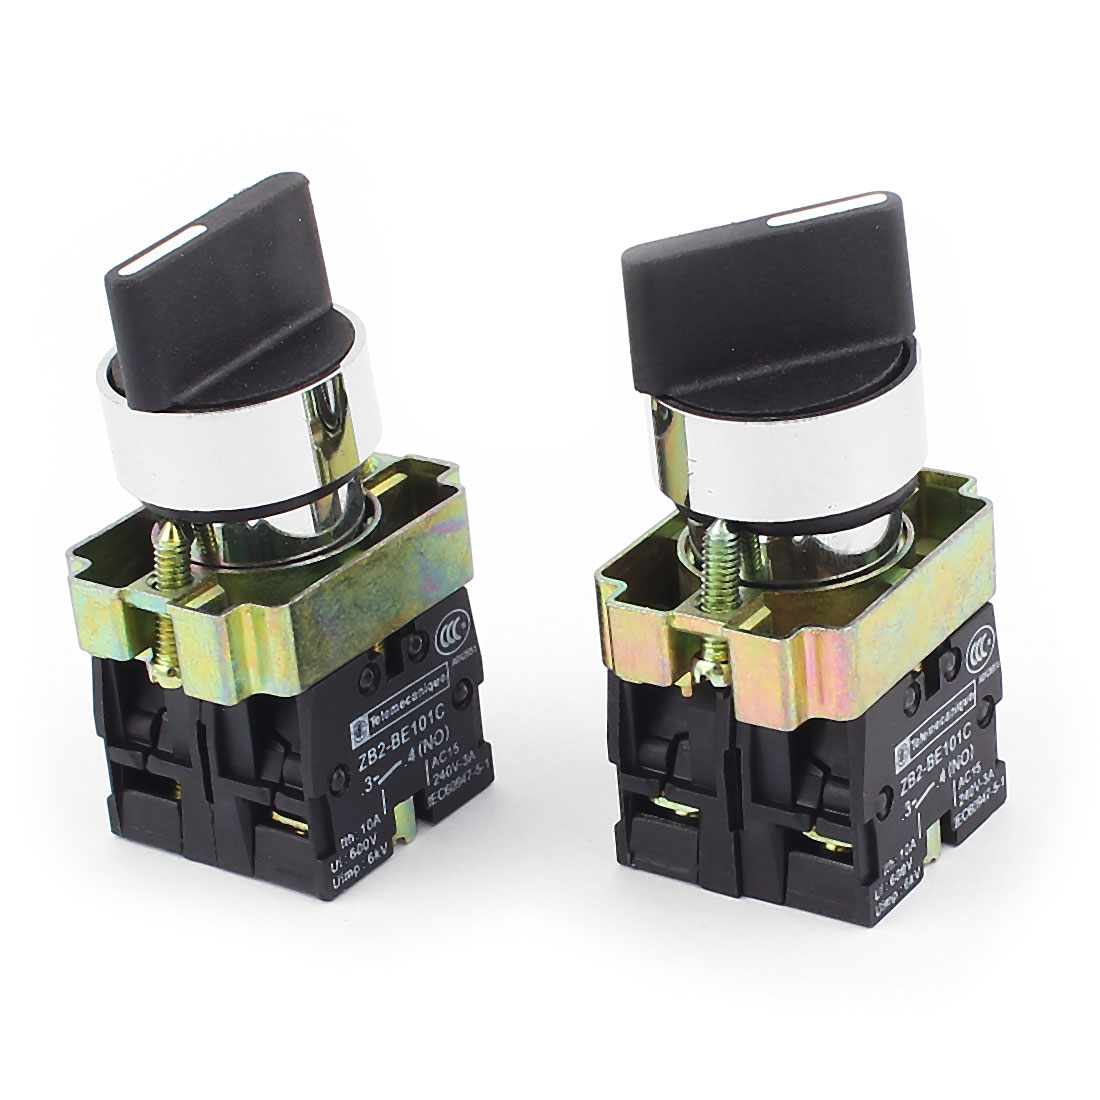 ZB2-BE101C AC 600V 10A 6KV DPST 2NO 3-Position Latching Rotary Selector Switch 2Pcs